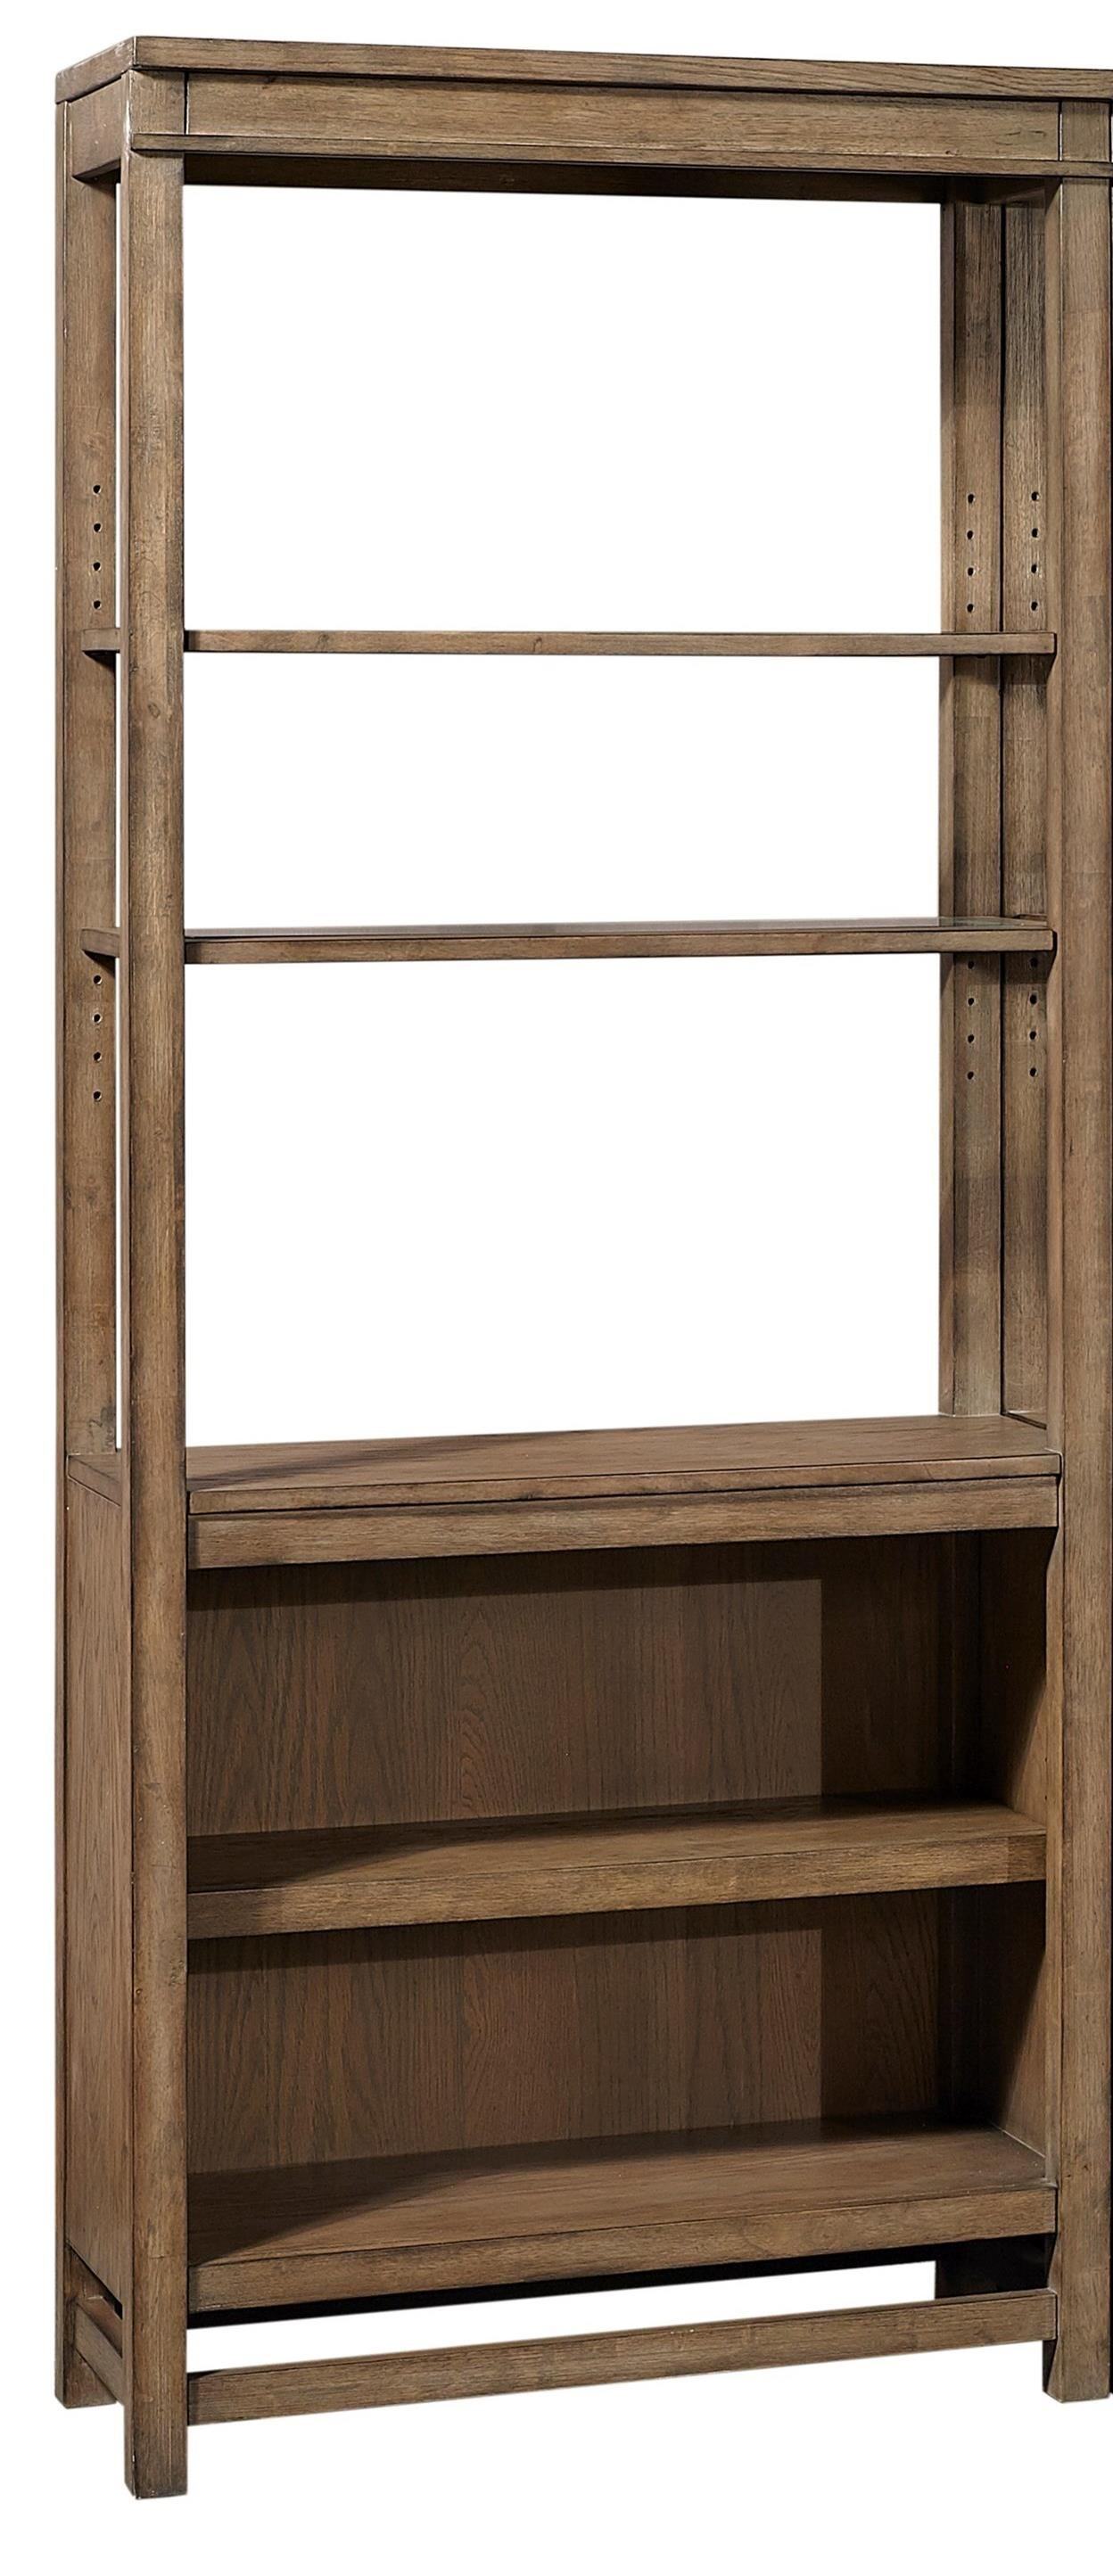 Casual Bookcase with Adjustable Glass Shelves